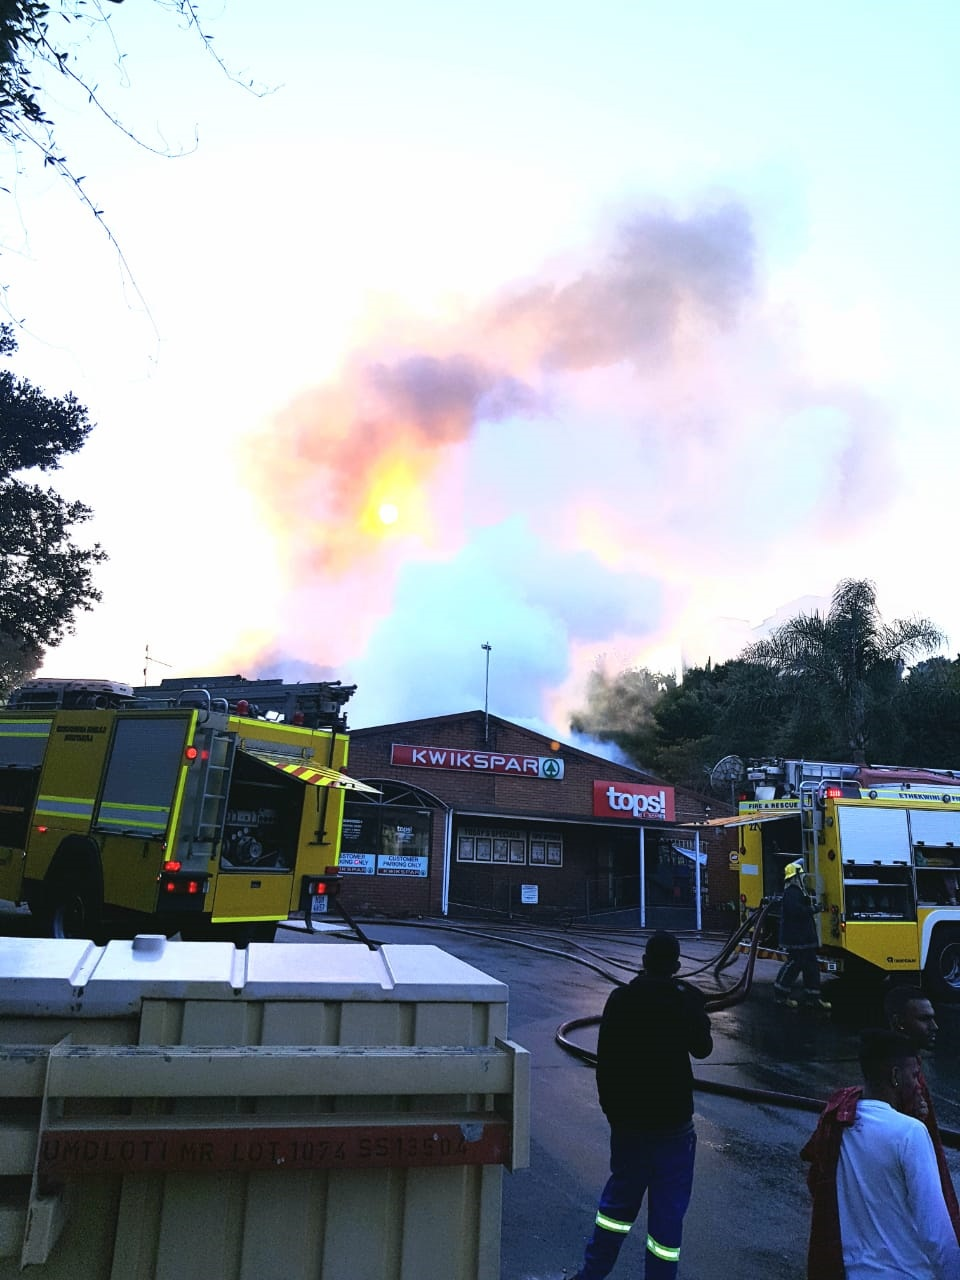 The KwikSpar complex in Umdloti on fire on Monday morning